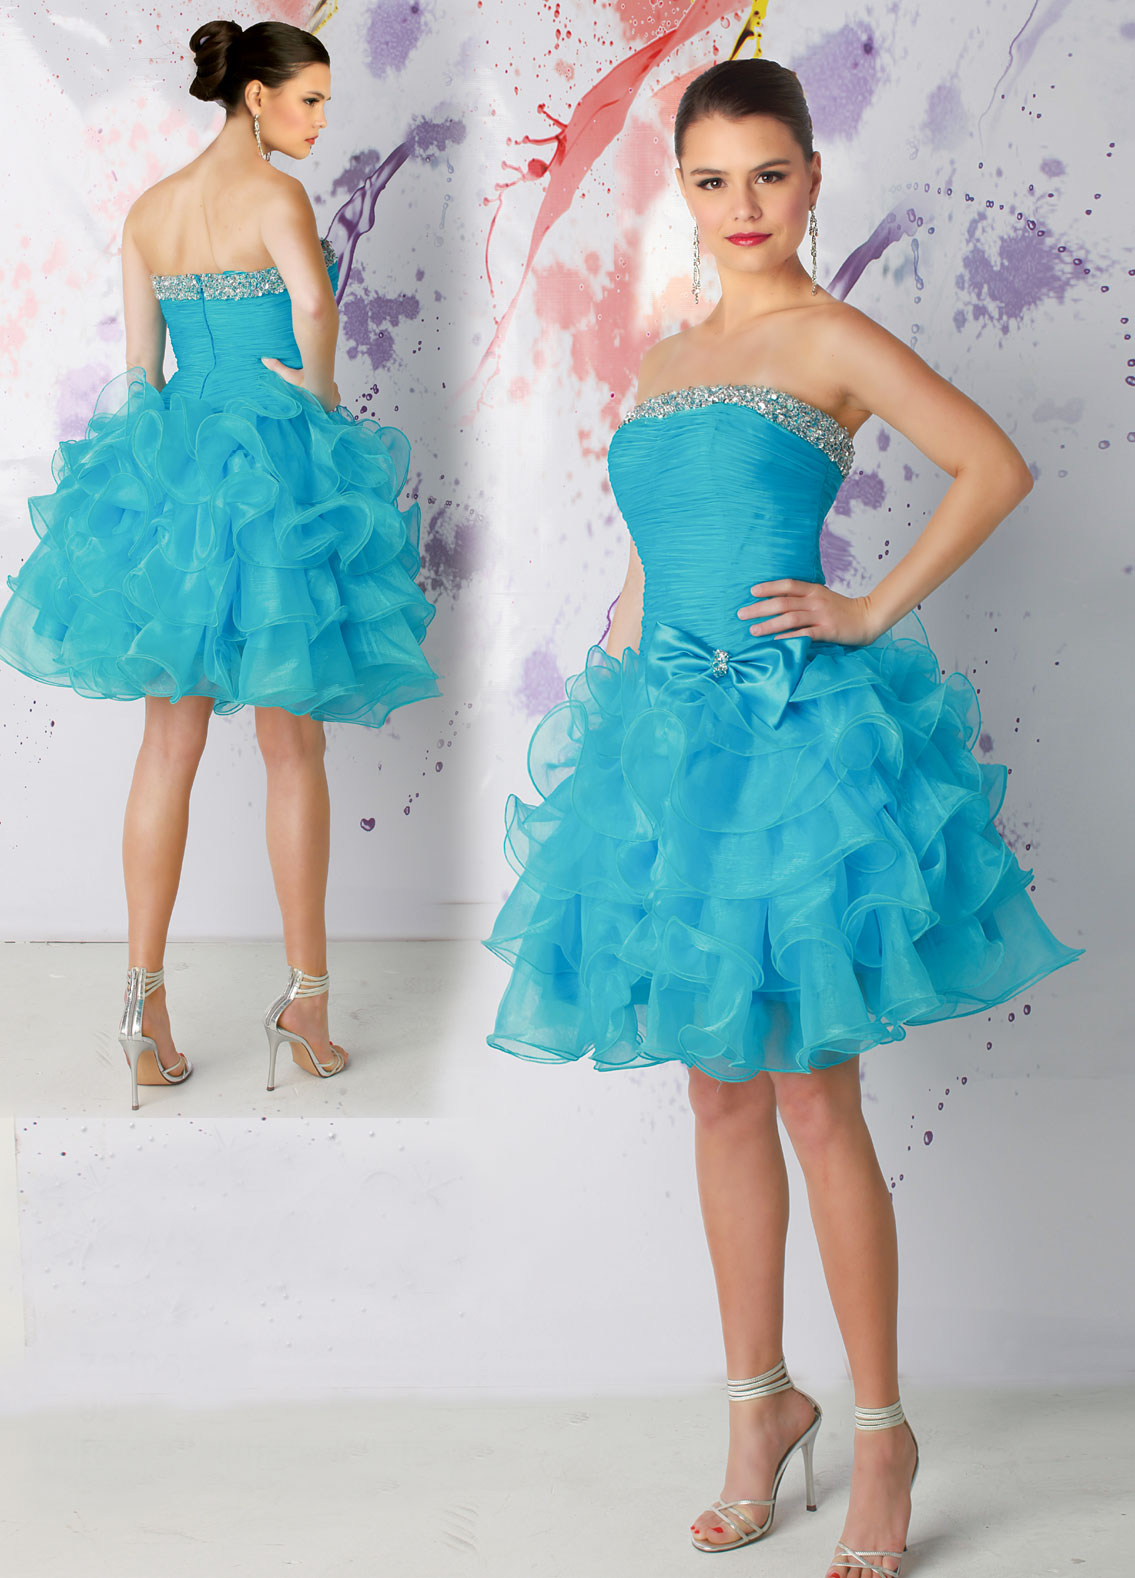 Baby doll dresses for prom.